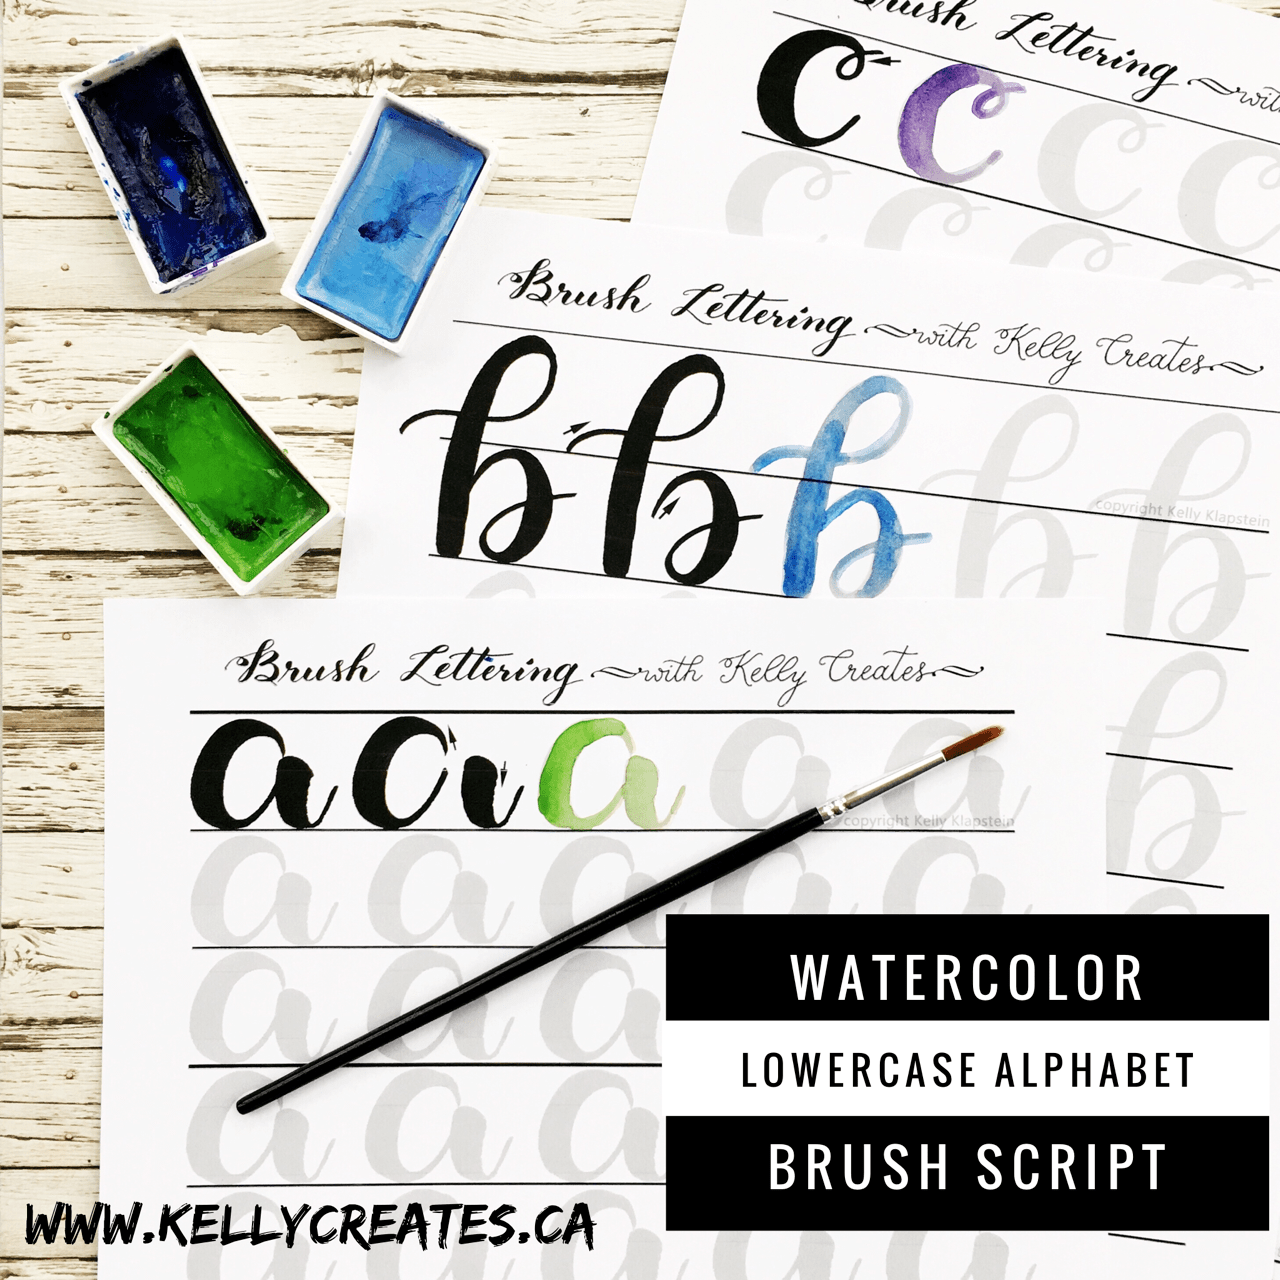 Watercolor Brush Lettering Worksheets Have Arrived